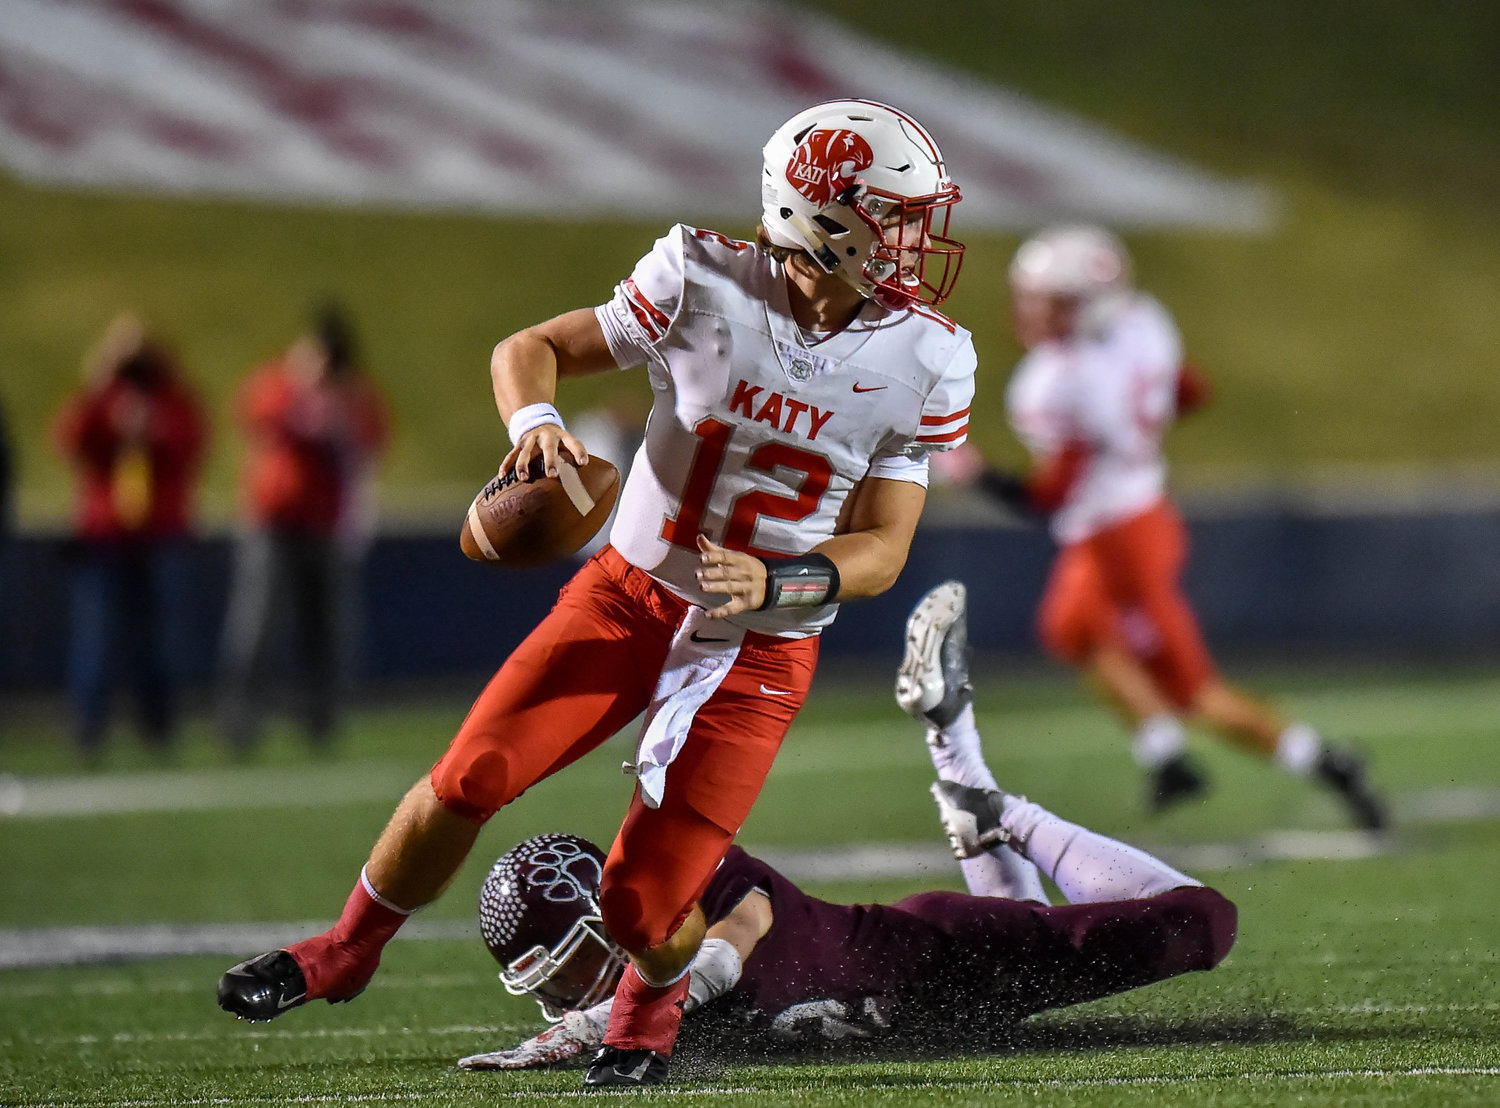 Houston, Tx. Nov. 22, 2019: Katy's QB Bronson McClelland (12) avoids the sack during the area playoff game between Katy Tigers and Cy-Fair Bobcats at Tully Stadium. (Photo by Mark Goodman / Katy Times)